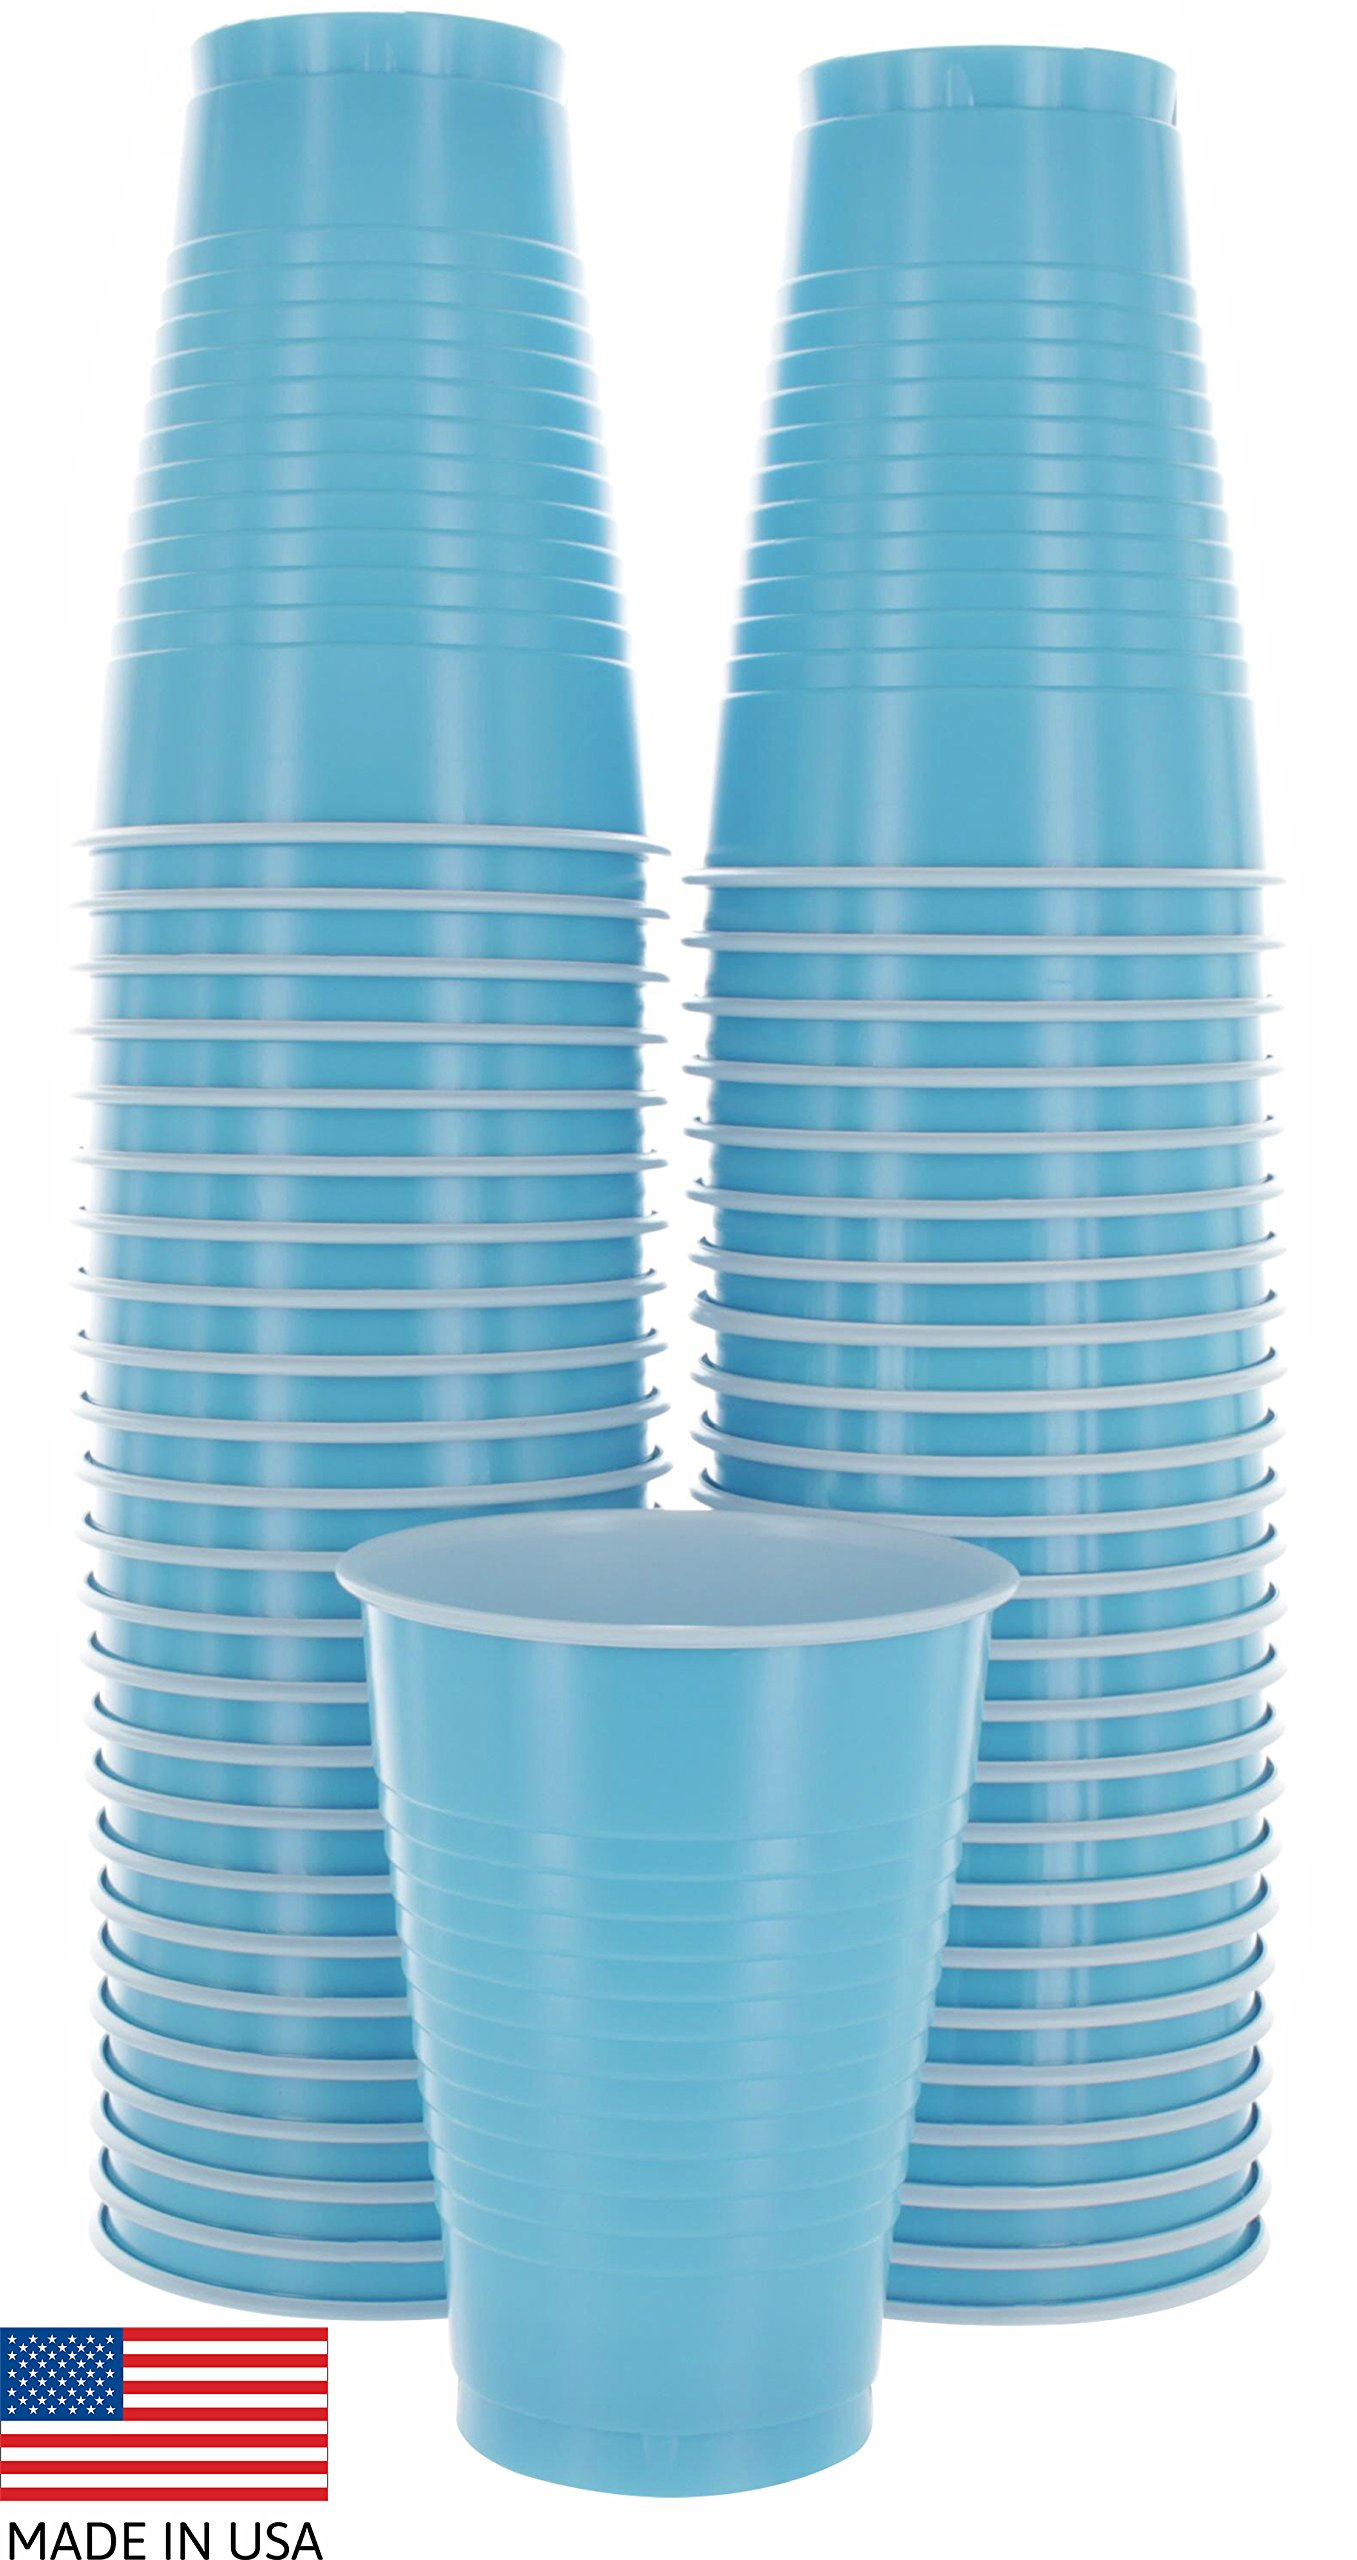 Amcrate Light Blue Colored 12-Ounce Disposable Plastic Party Cups - Ideal for Weddings, Party's, Birthdays, Dinners, Lunch's. (Pack of 50)